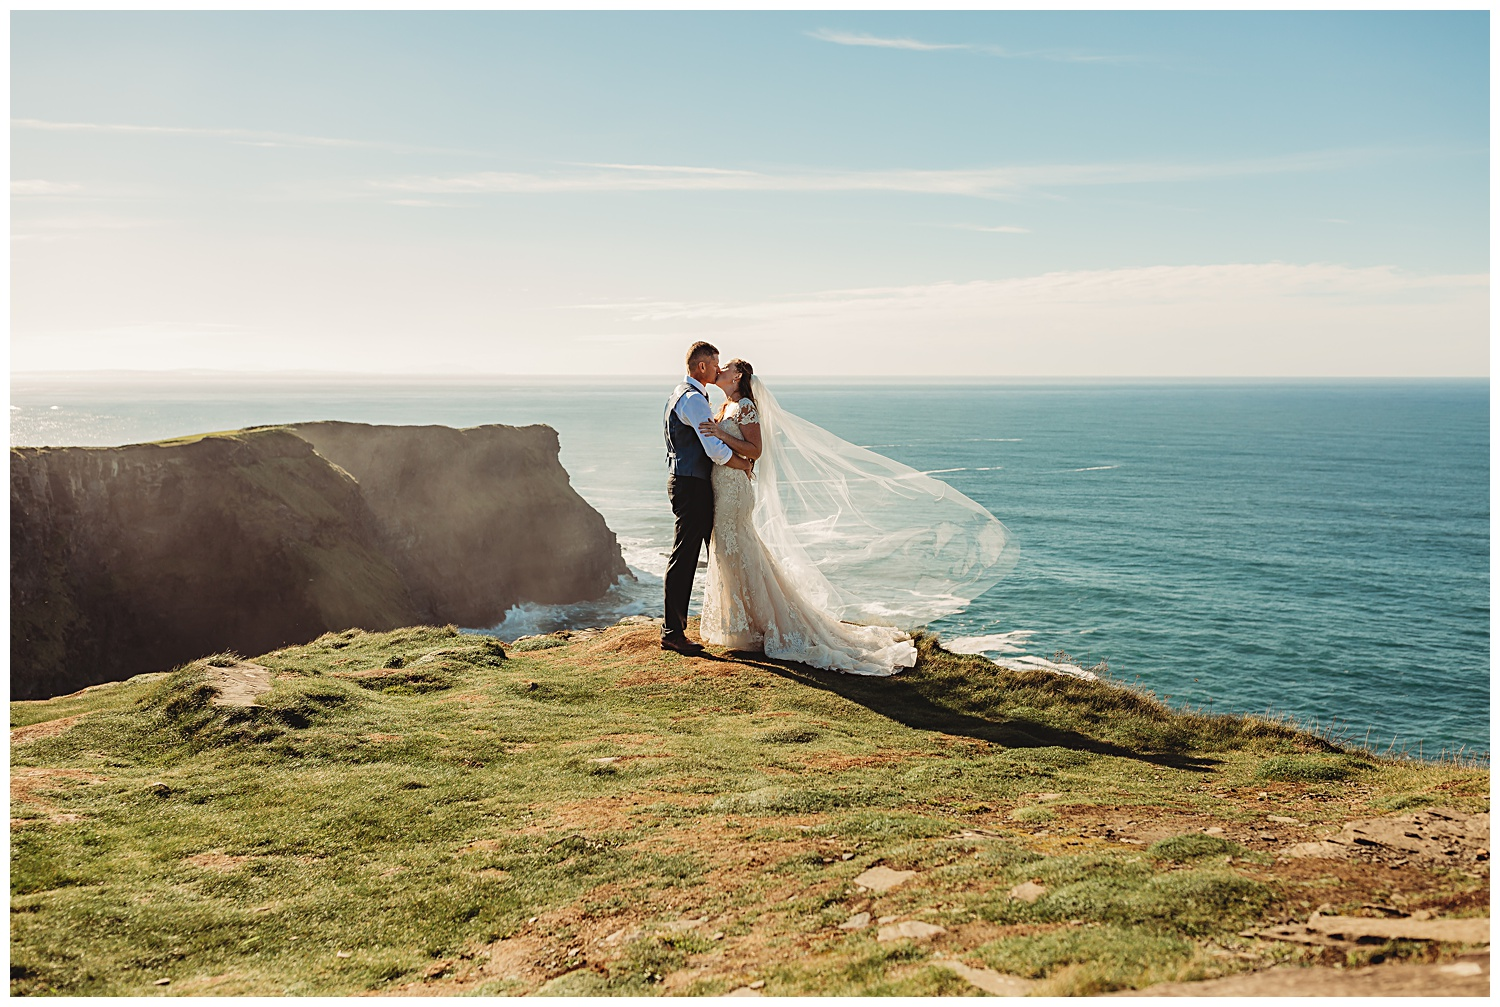 The Cliffs of Moher Destination Wedding Liscannor, County Clare, Ireland_1259.jpg